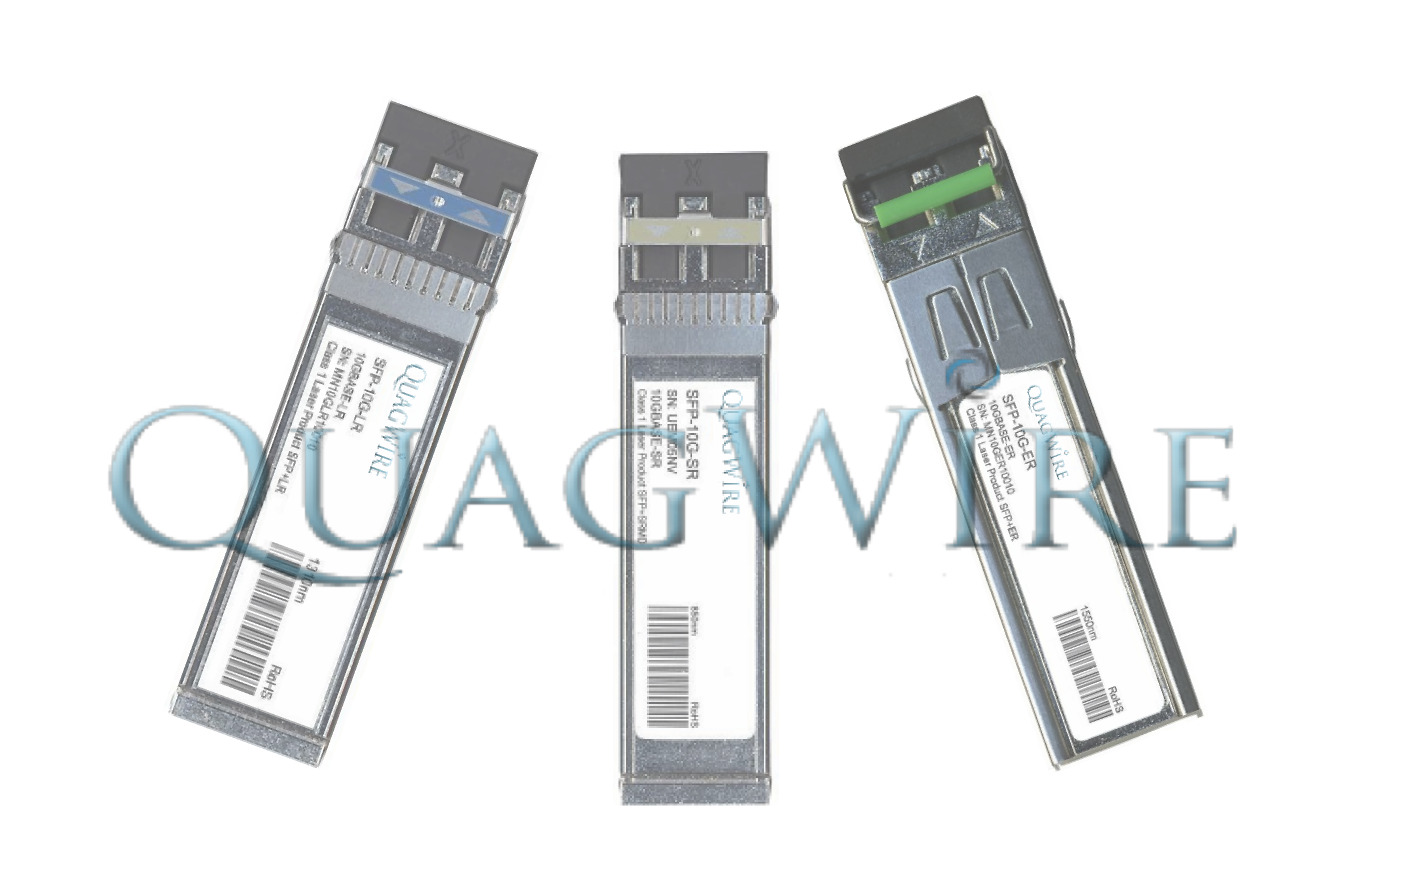 Enterasys 10GB-LRLX-SFPP 10GBASE-LR 1000BASE-LX 1310nm SM Dual Rate SFP+ Transceiver (10GB-LRLX-SFPP-QW)